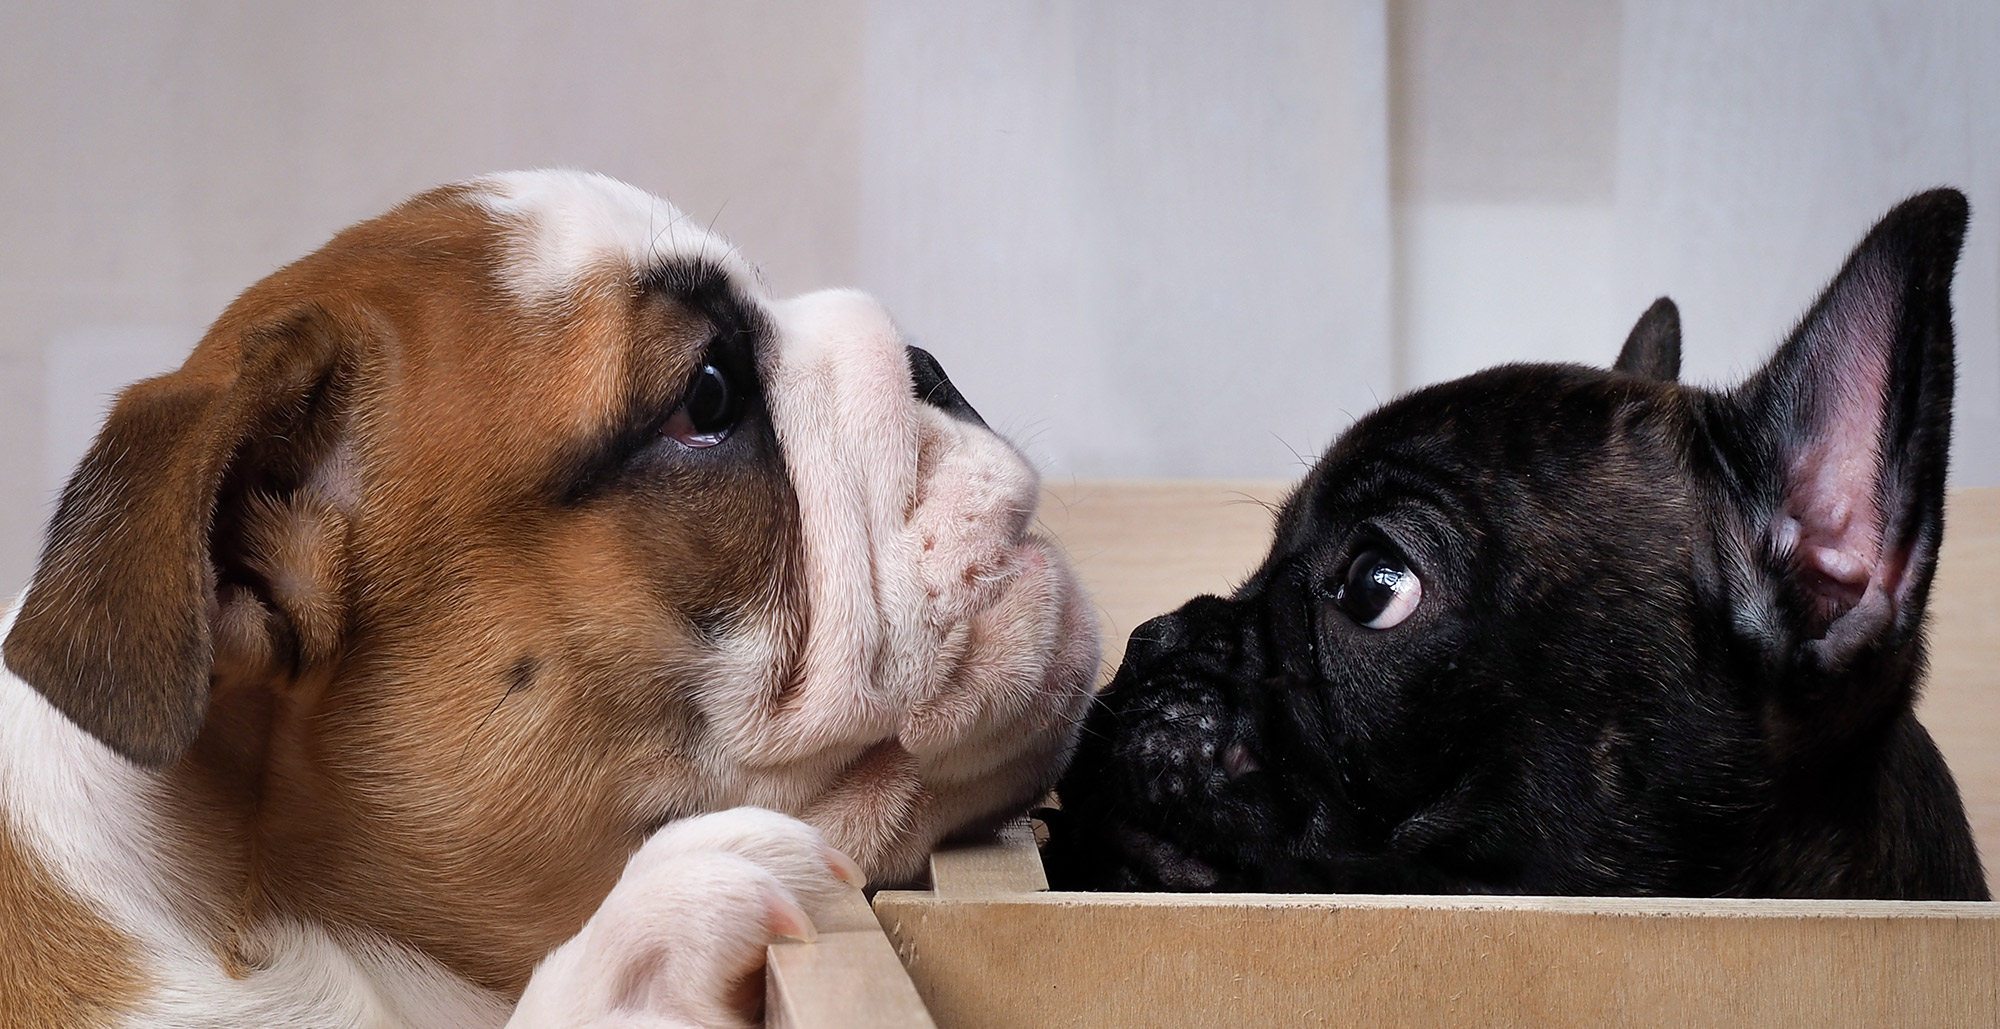 Bulldog Puppy and French Bulldog Puppy